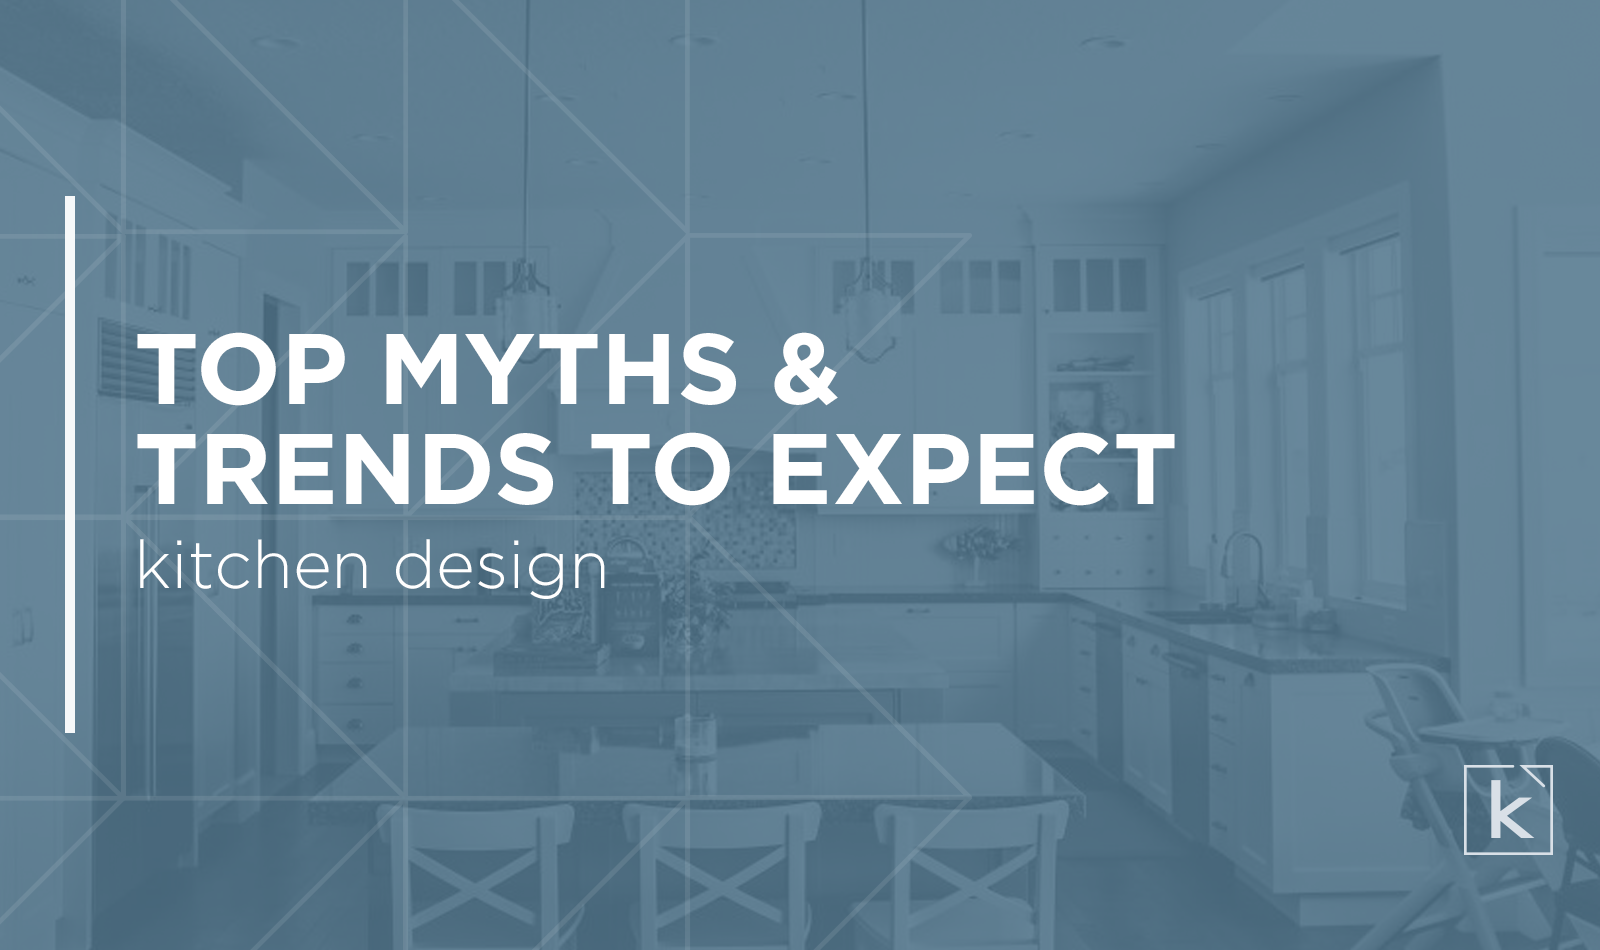 kitchen-trends-myths